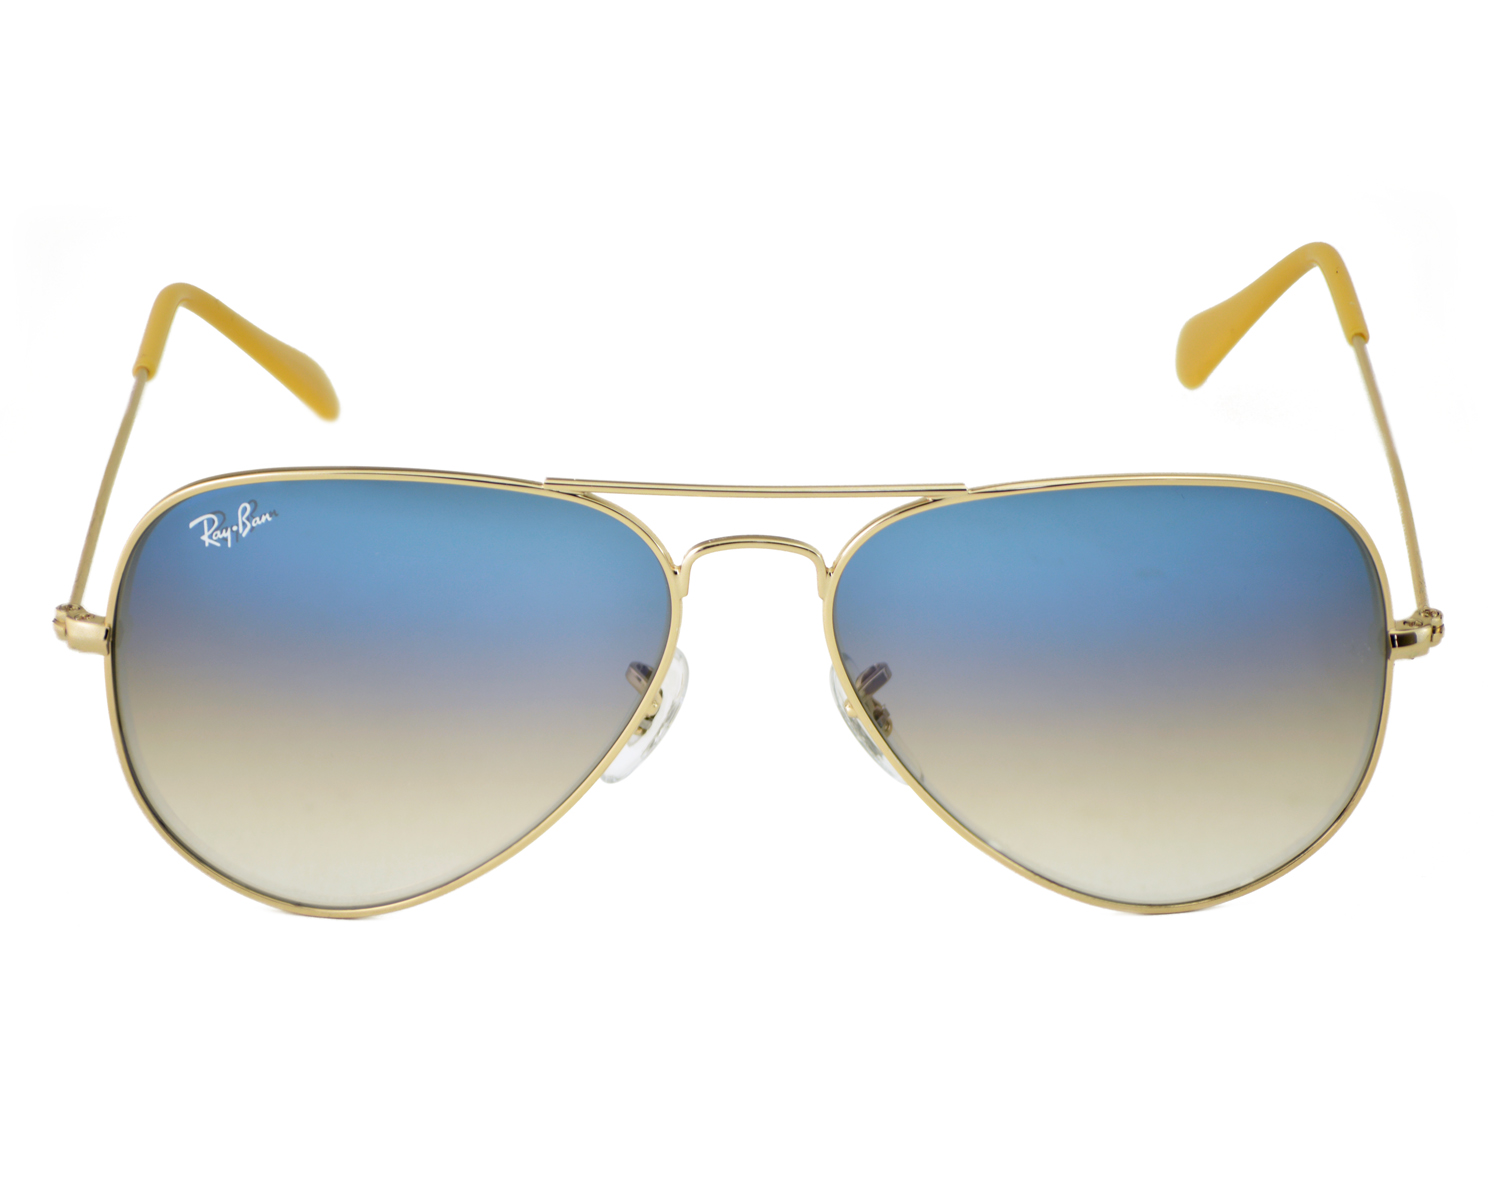 be0592adac Ray-Ban RB3025 Aviator Gradient 001 3F Gold Frame Light Blue Gradient  Lenses Unisex Sunglasses 58mm